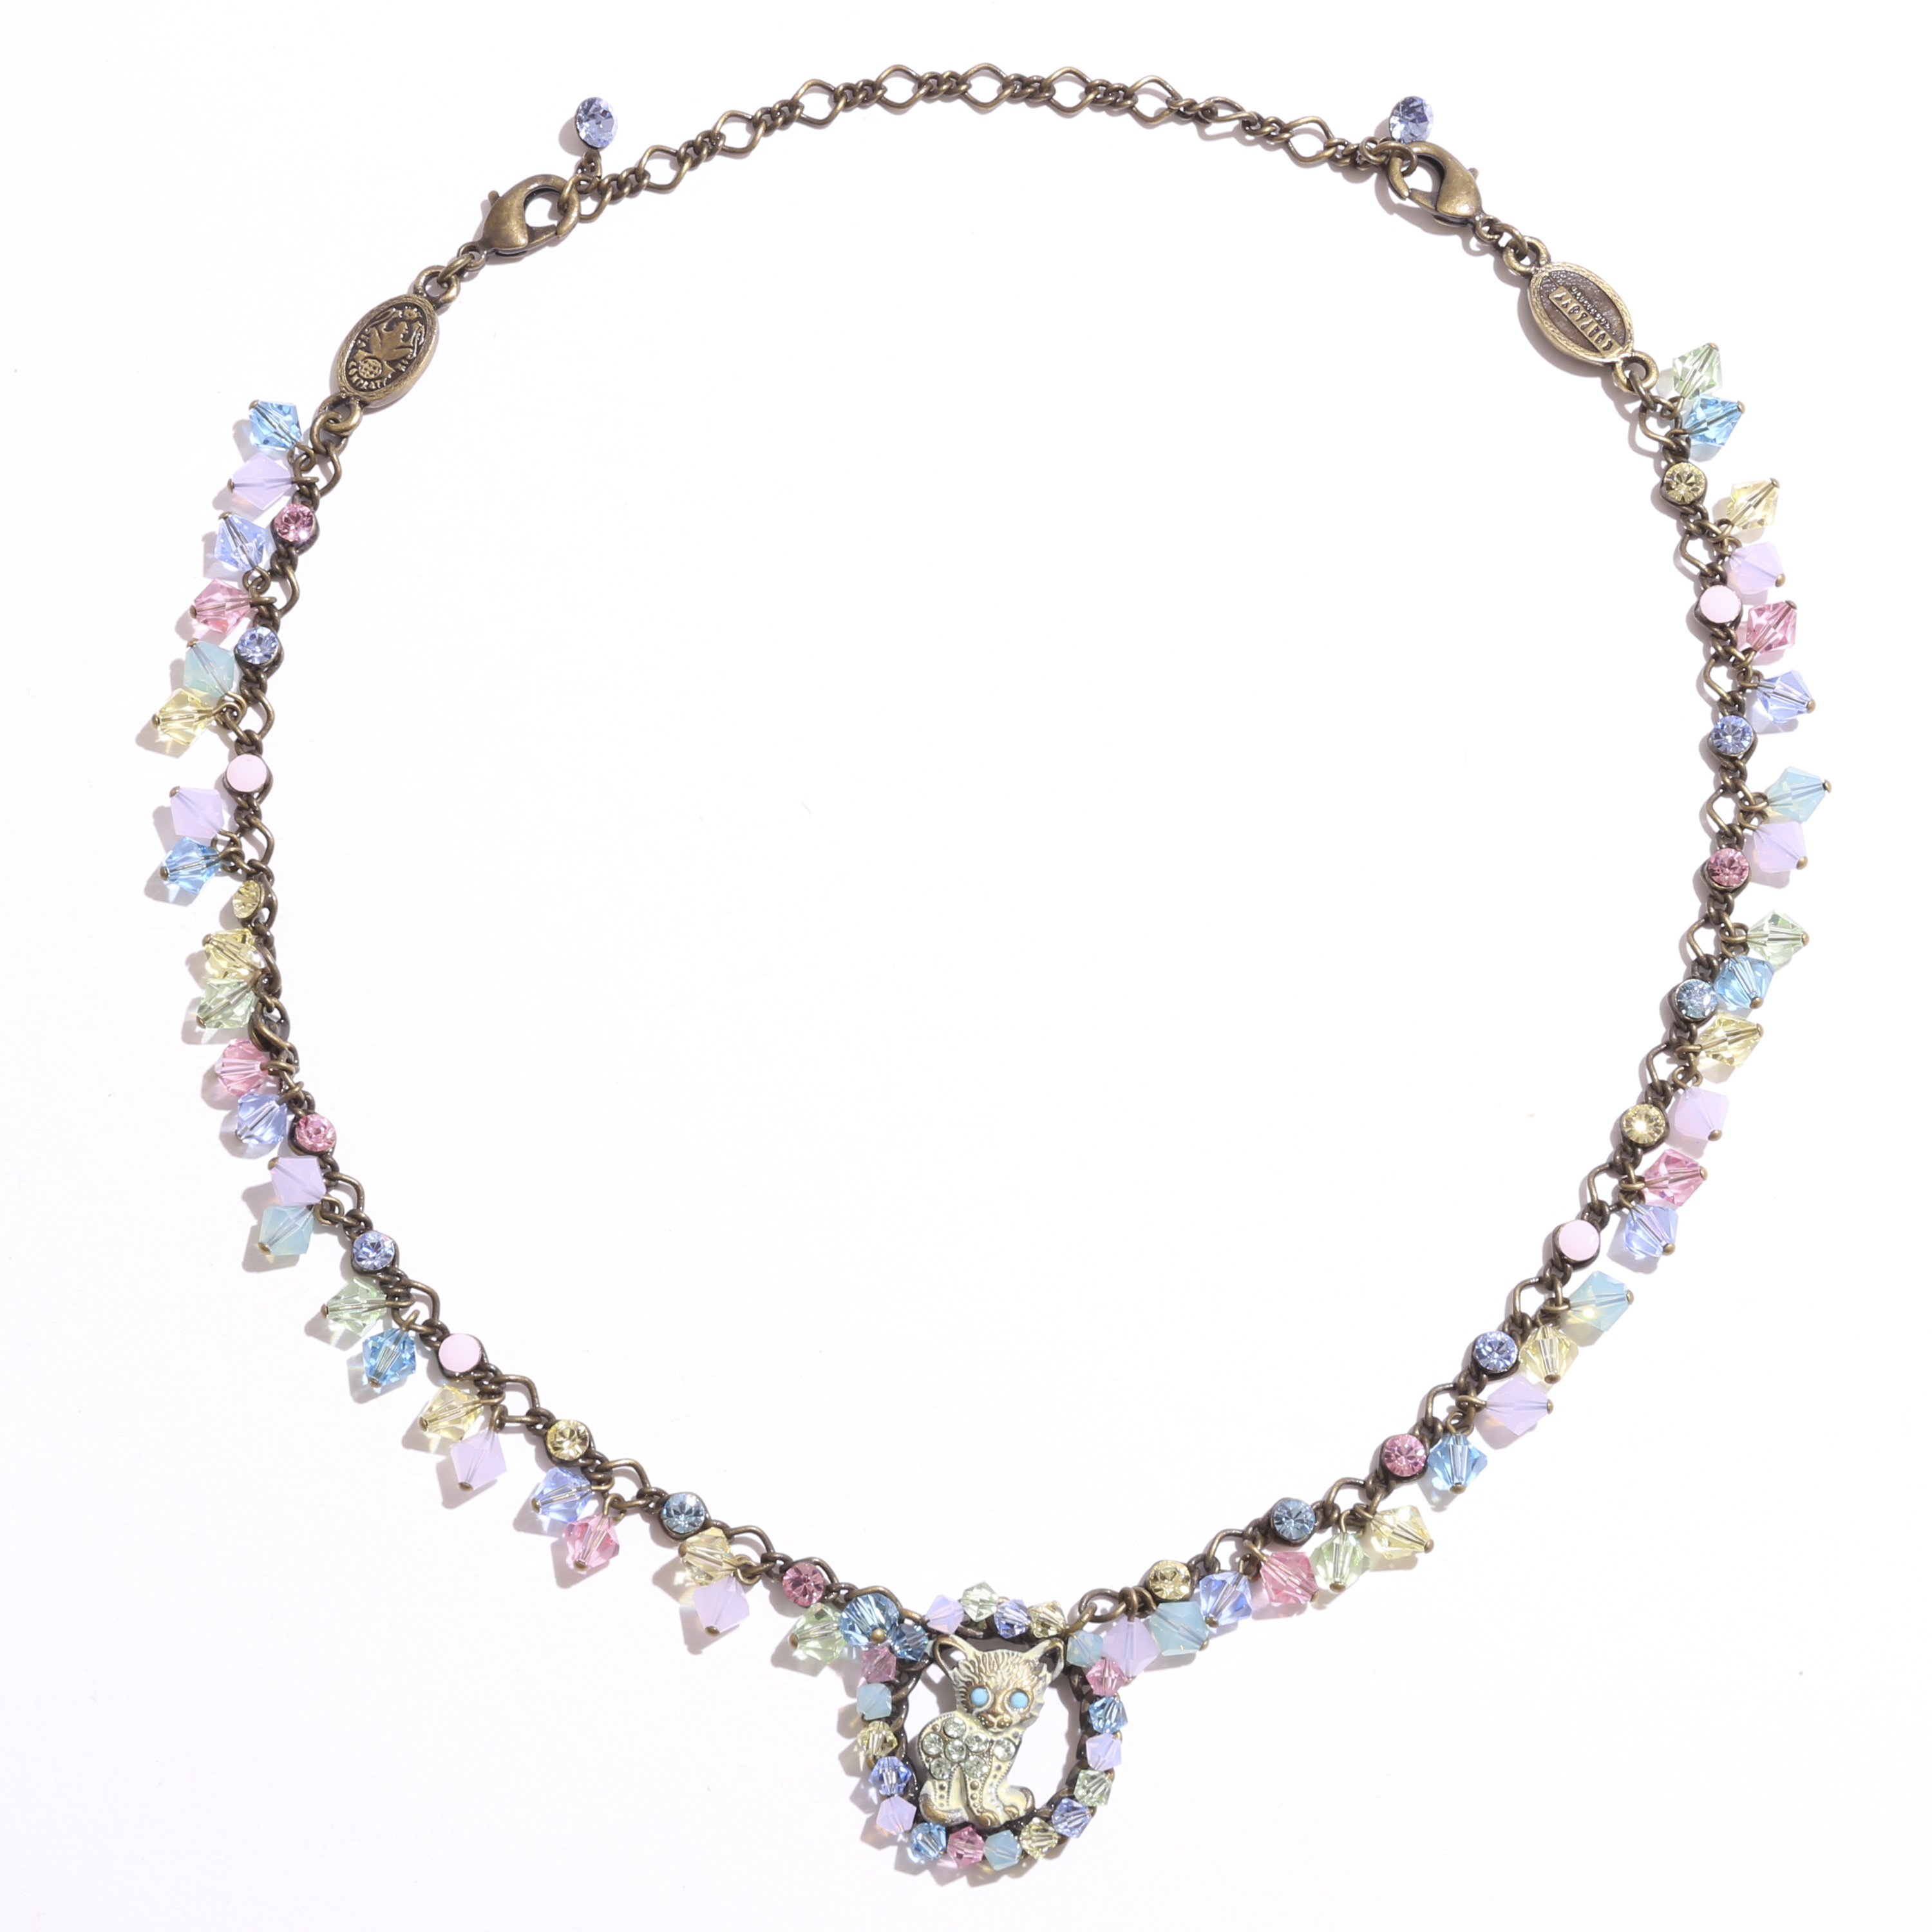 Carousel neklace/リスネックレス